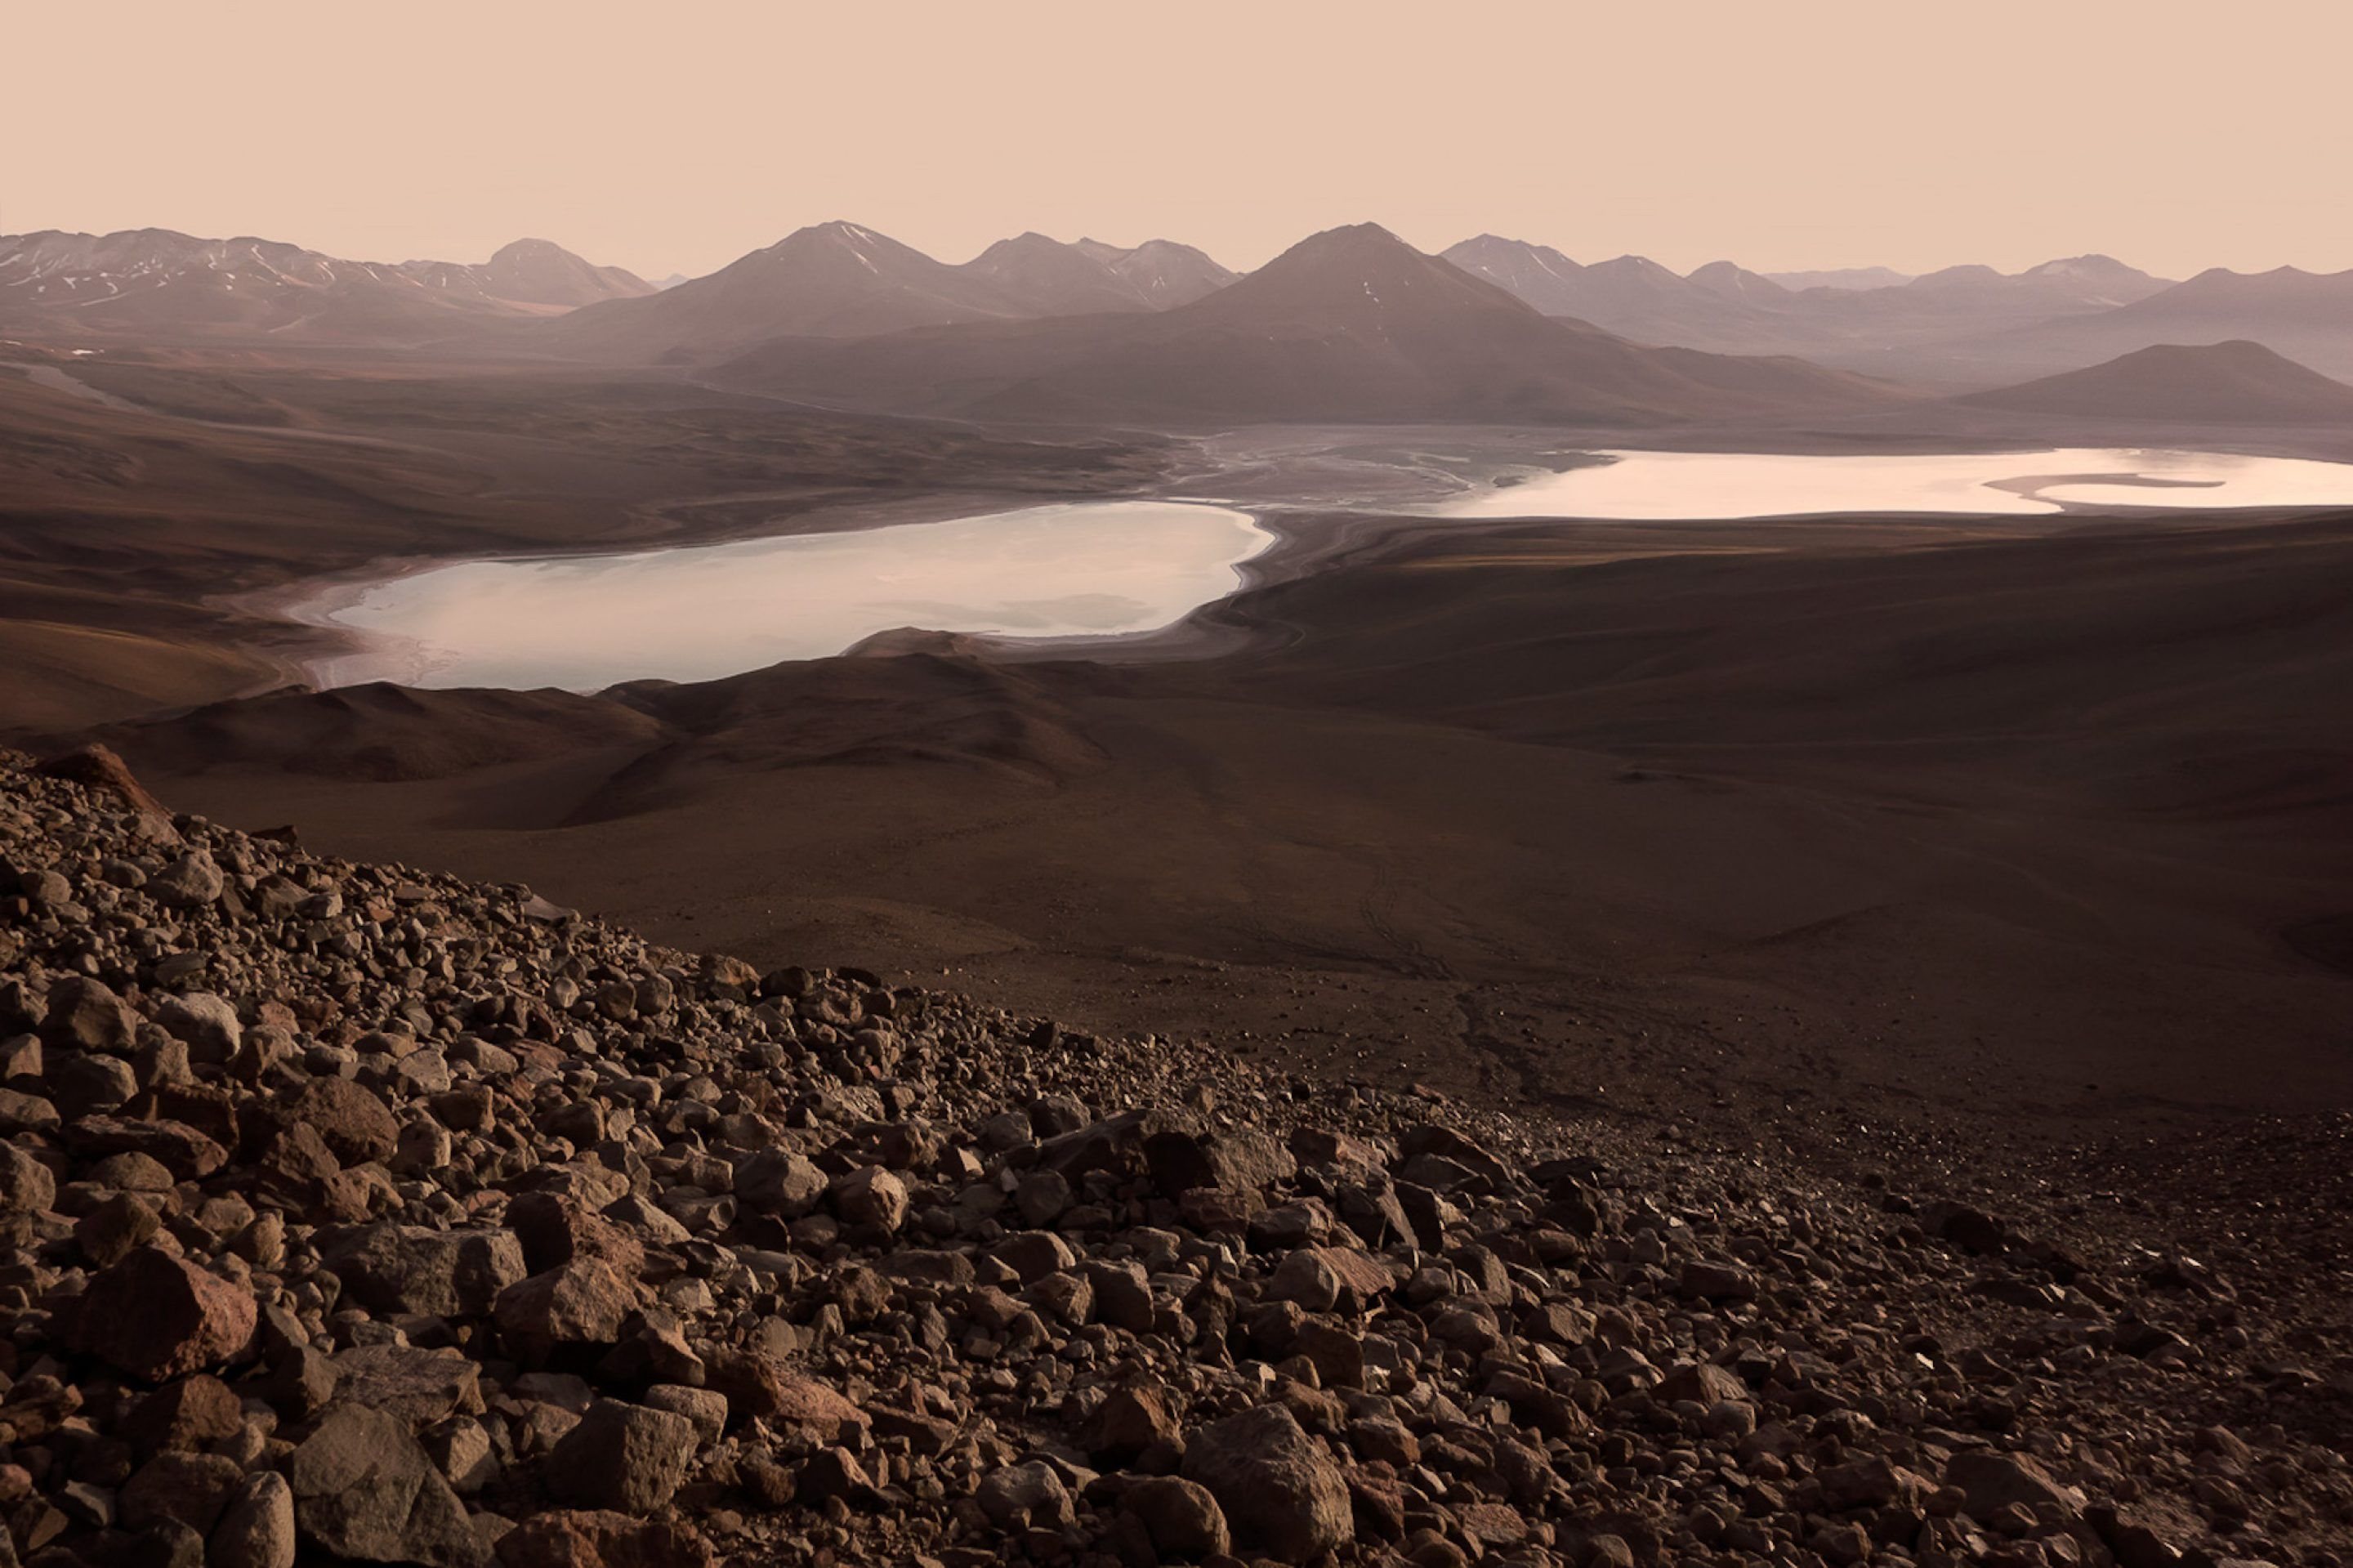 IGNANT-Photography-Julian-Mauvre-Greetings-From-Mars-009